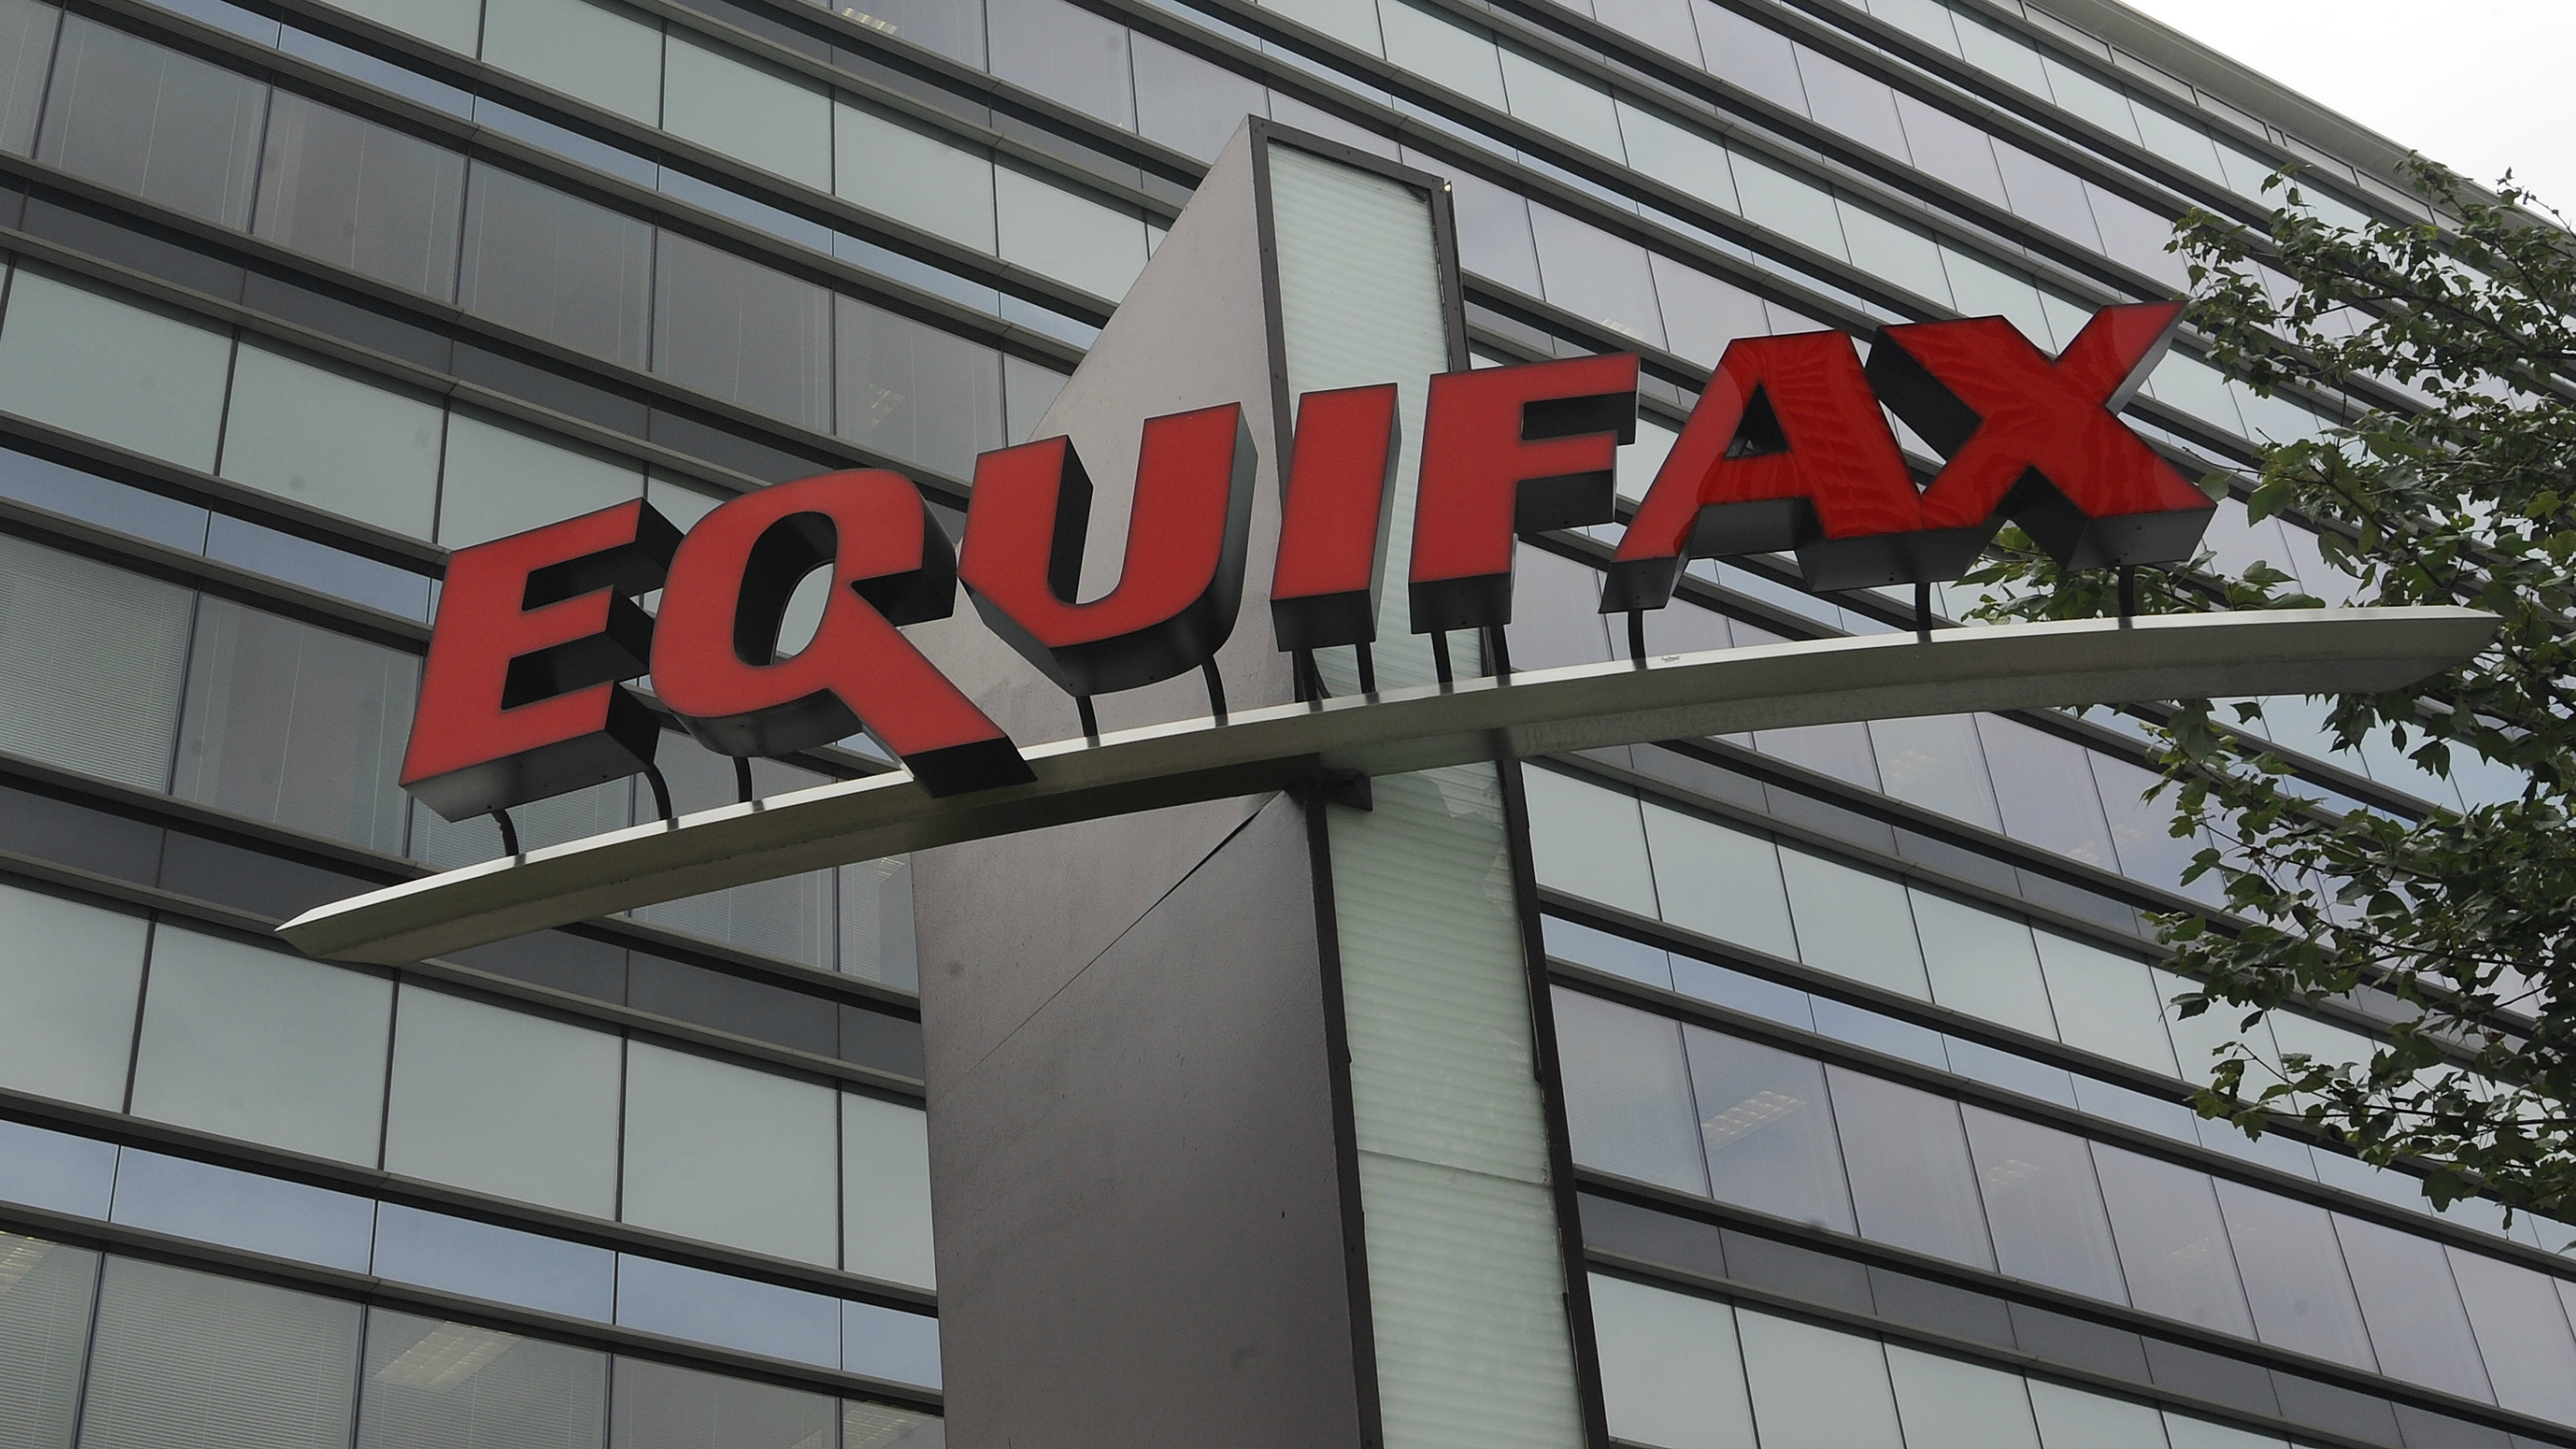 Equifax is descending into a PR inferno.